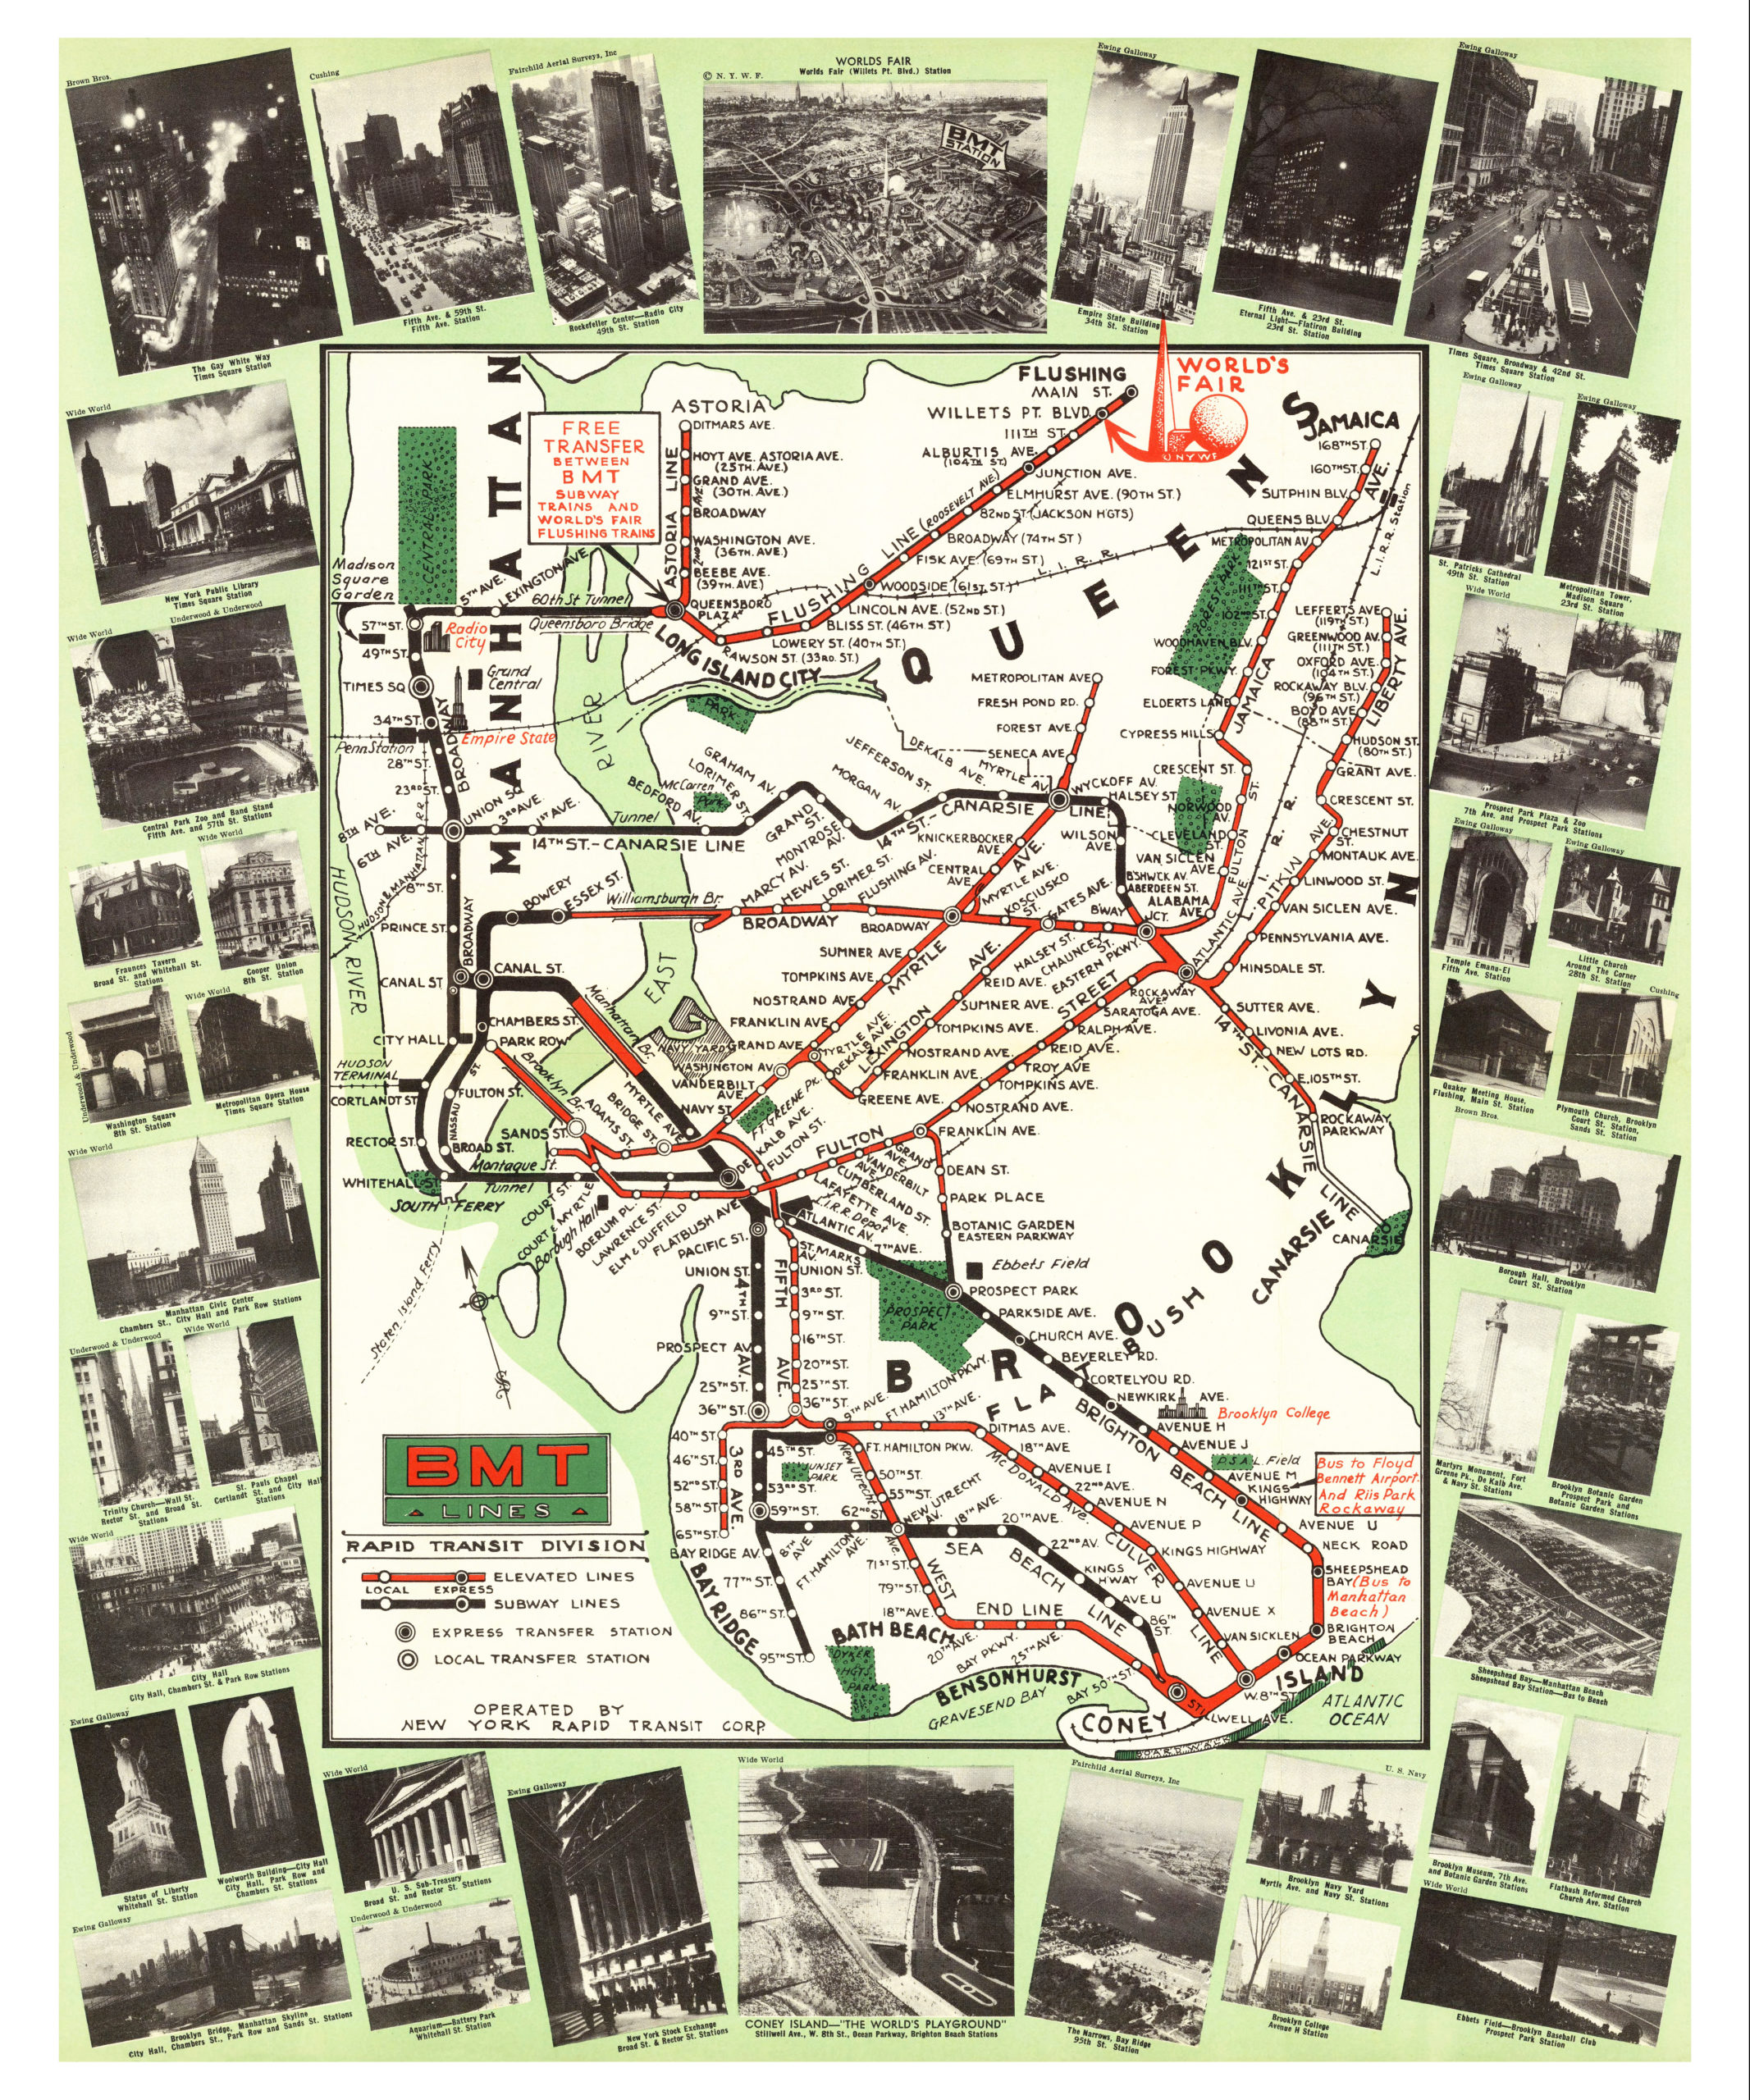 Nyc Subway Map Scan.Map Of Nyc Subways Created For 1939 World S Fair Knowol